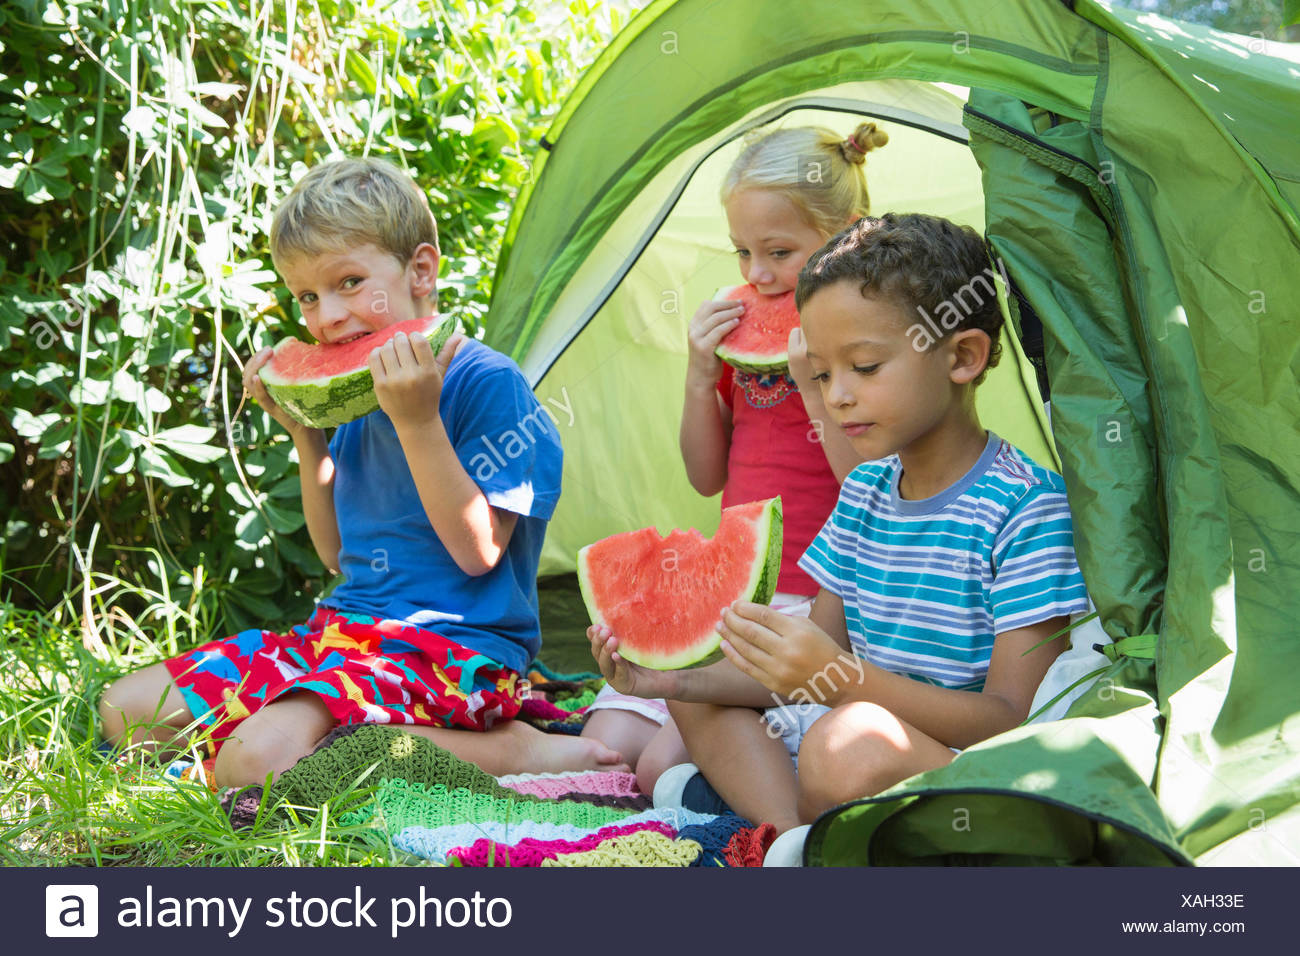 Three children eating watermelon slices in garden tent - Stock Image